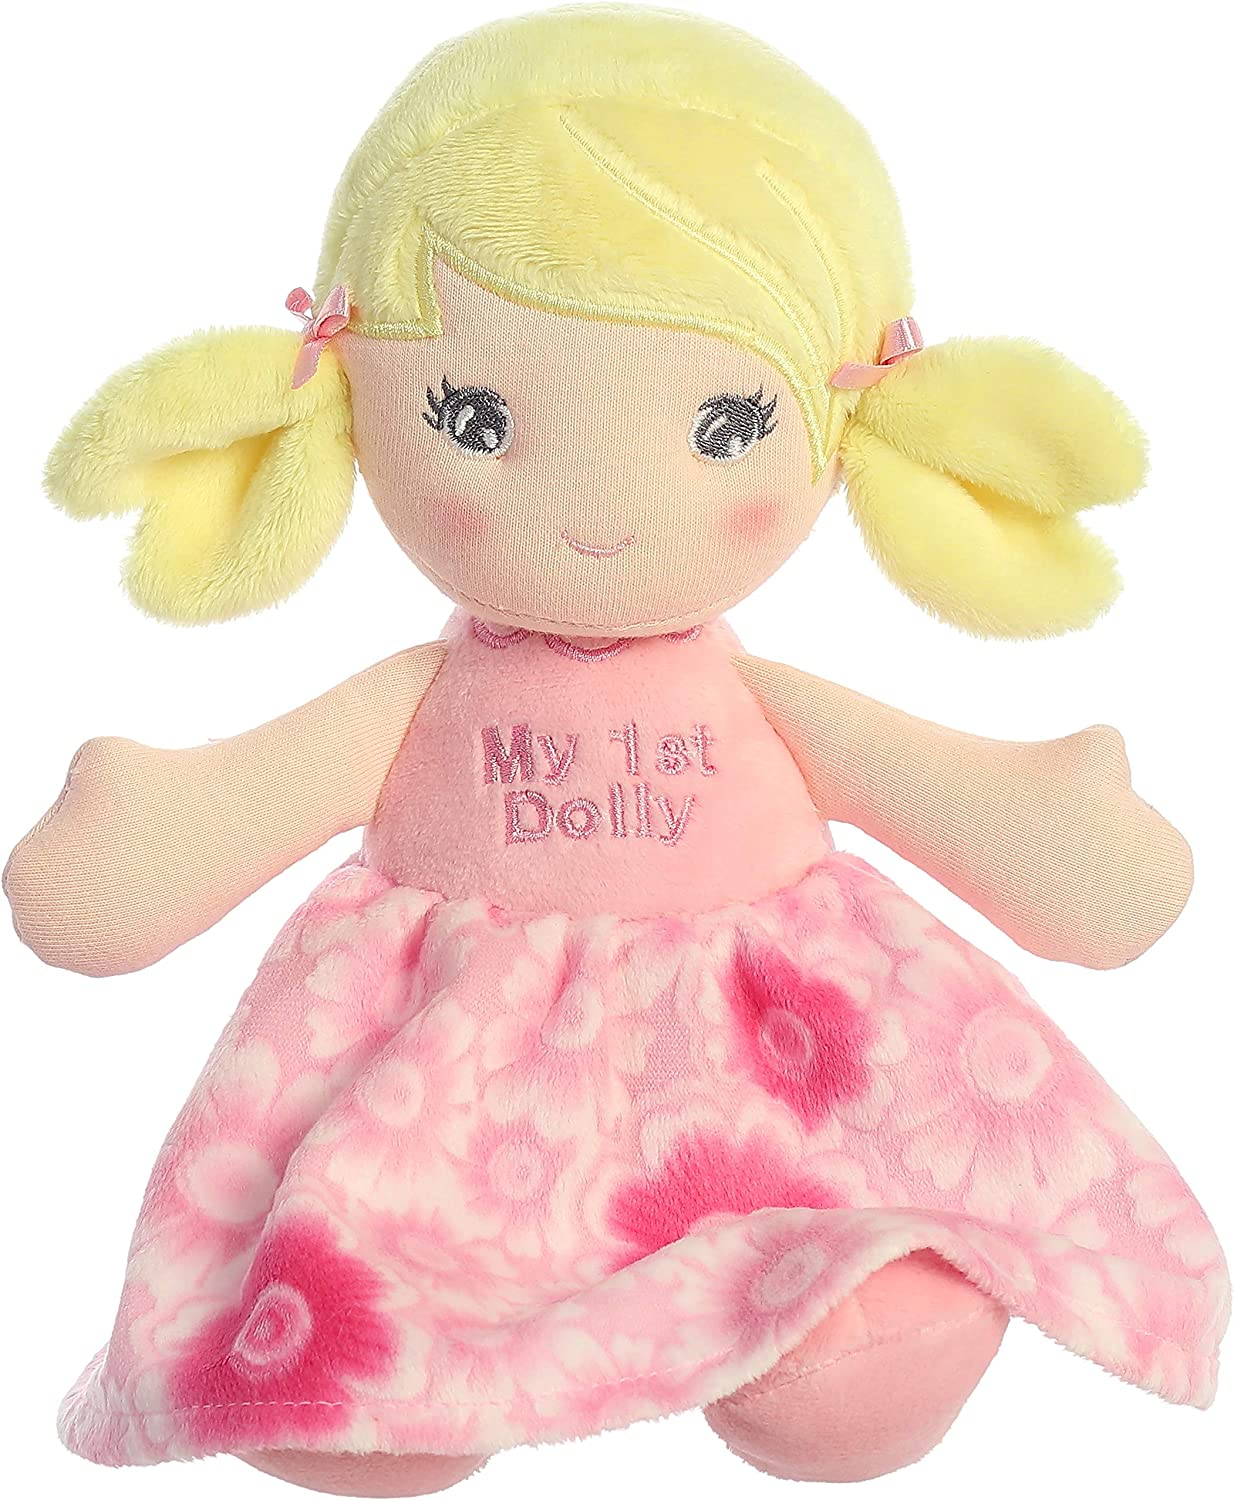 "ebba - Dolls - 12"" First Doll Blonde"